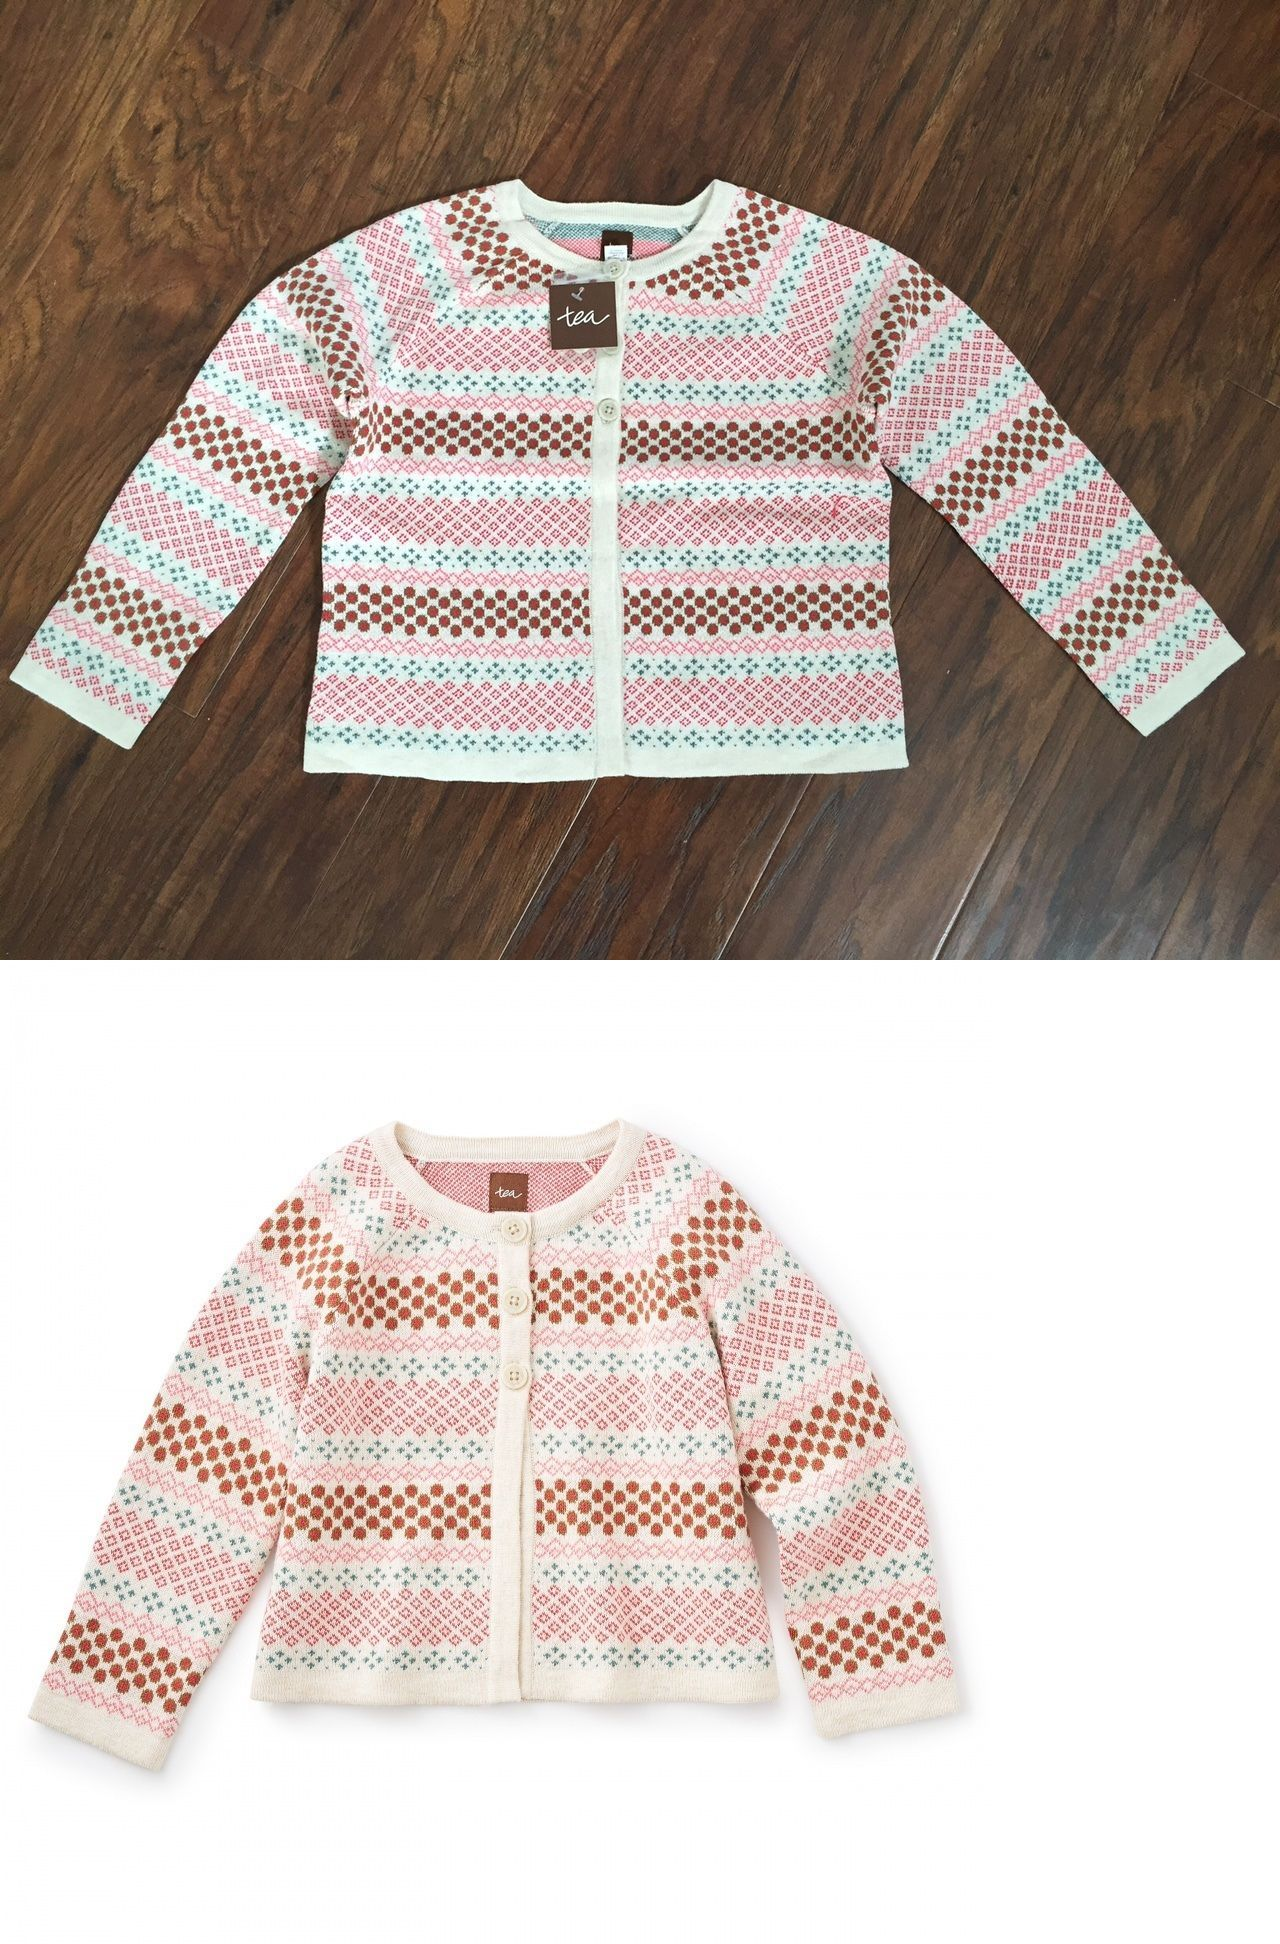 Sweaters 51582: Nwt Tea Collection Girls M 6 - 7 Cardigan Sweater ...